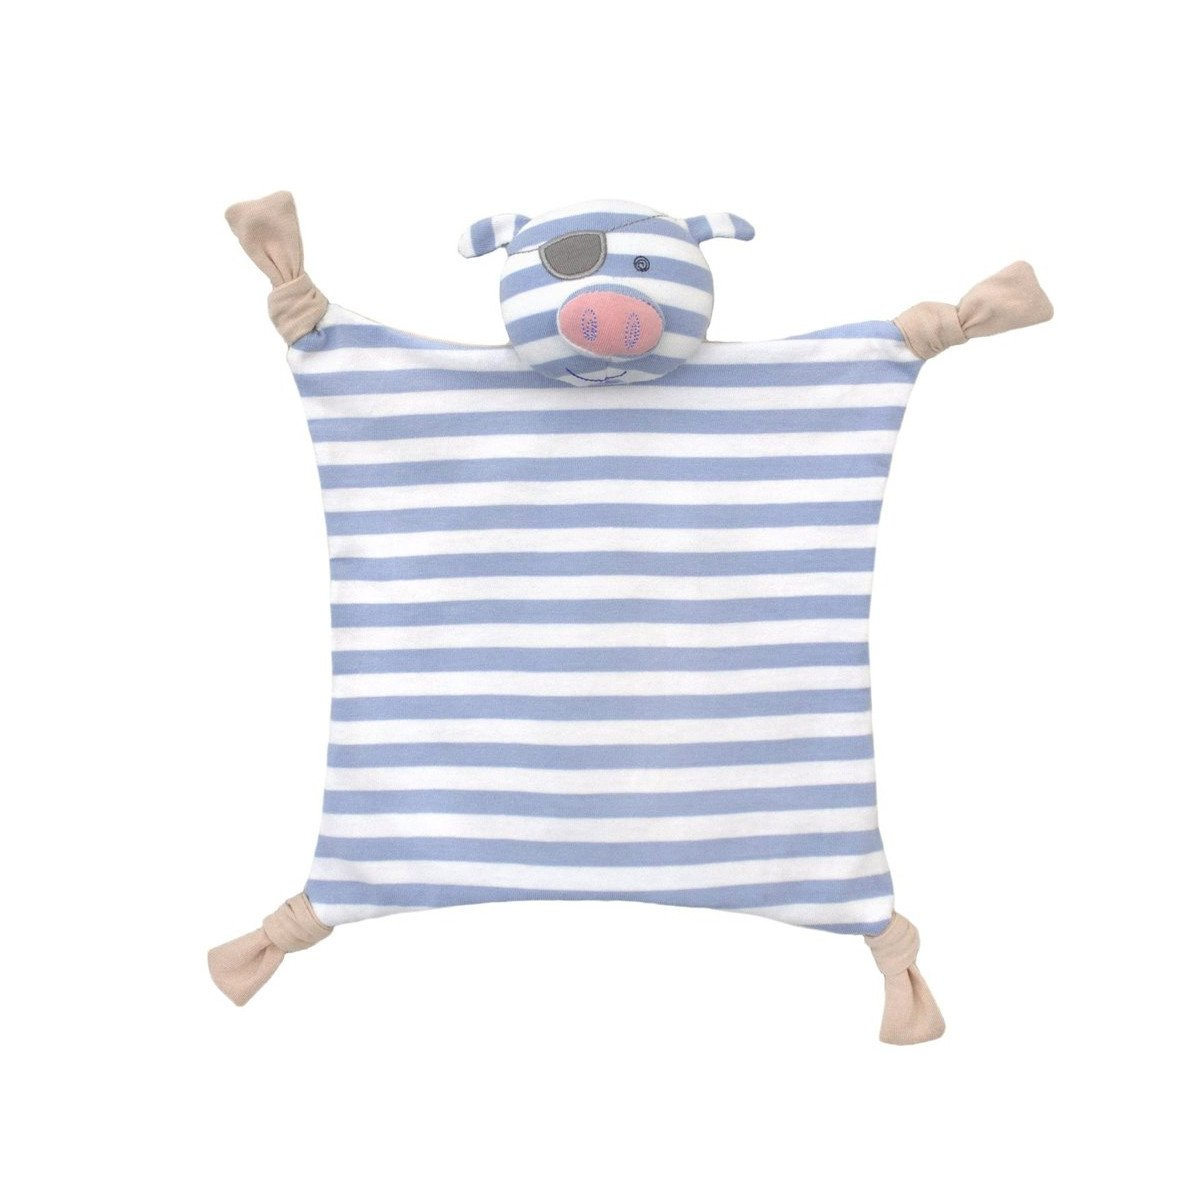 Apple Park Organic Teether Blankie  Pirate Pig - Apple Park Organic - Little Earth Nest - 4